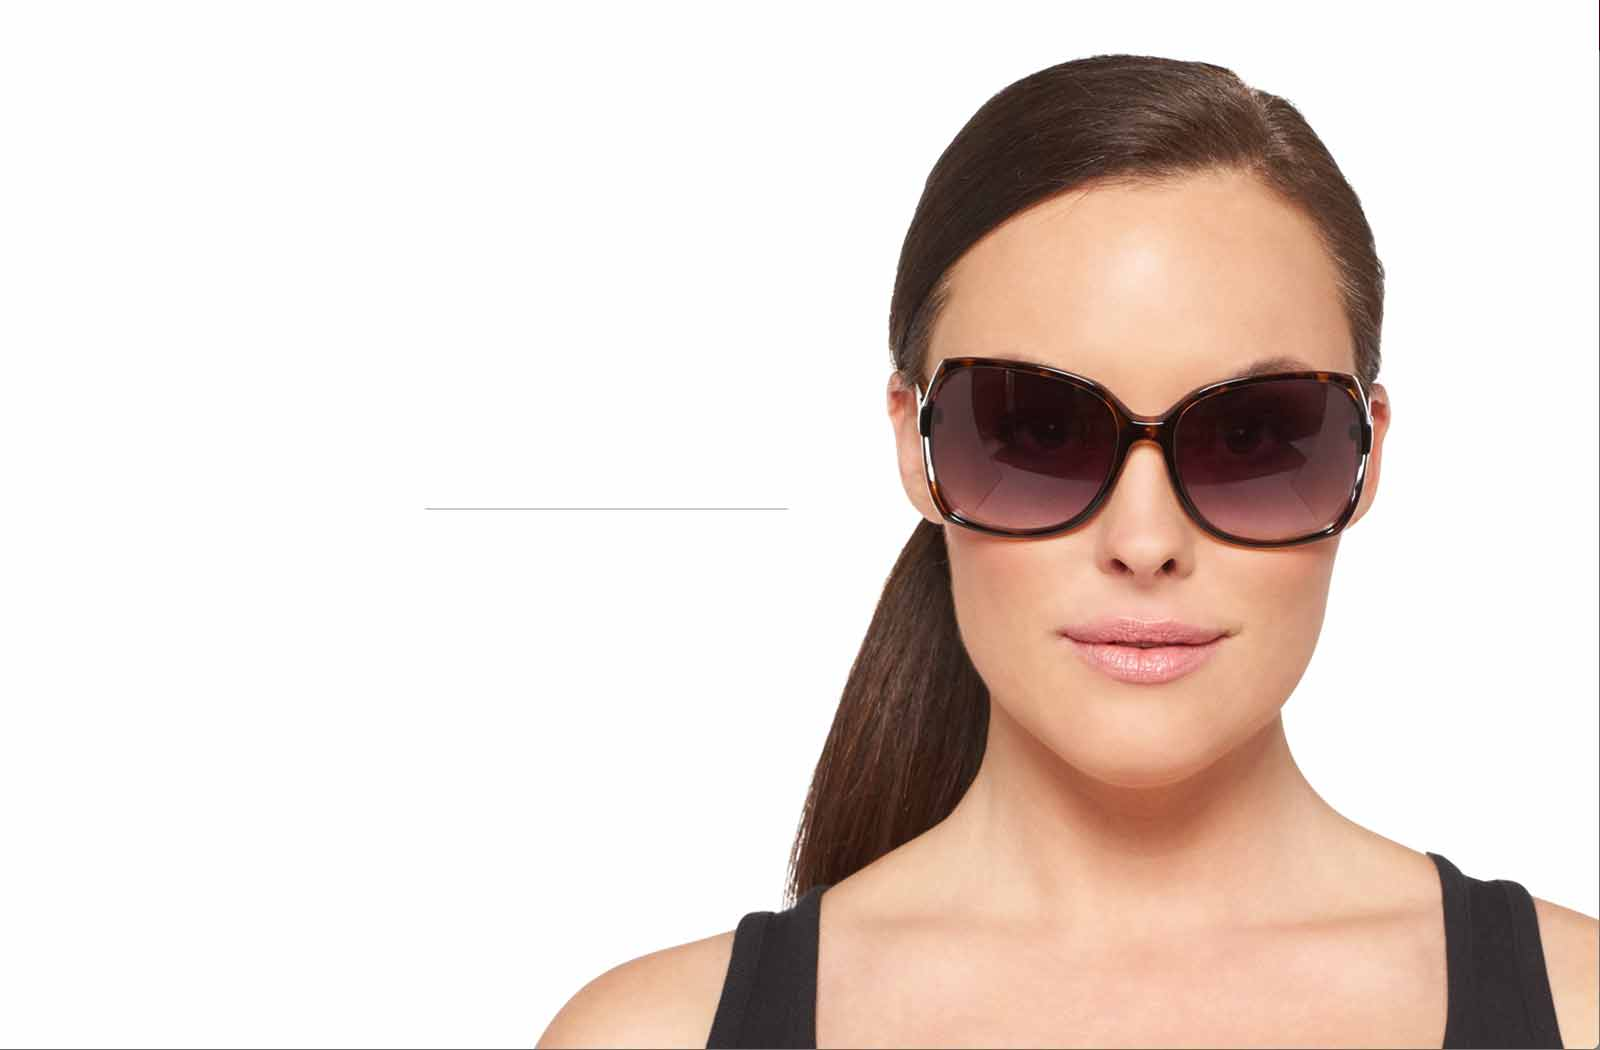 Thick Frame Glasses For Round Face : Accessories : Womens Accessories : Sunglasses : Target